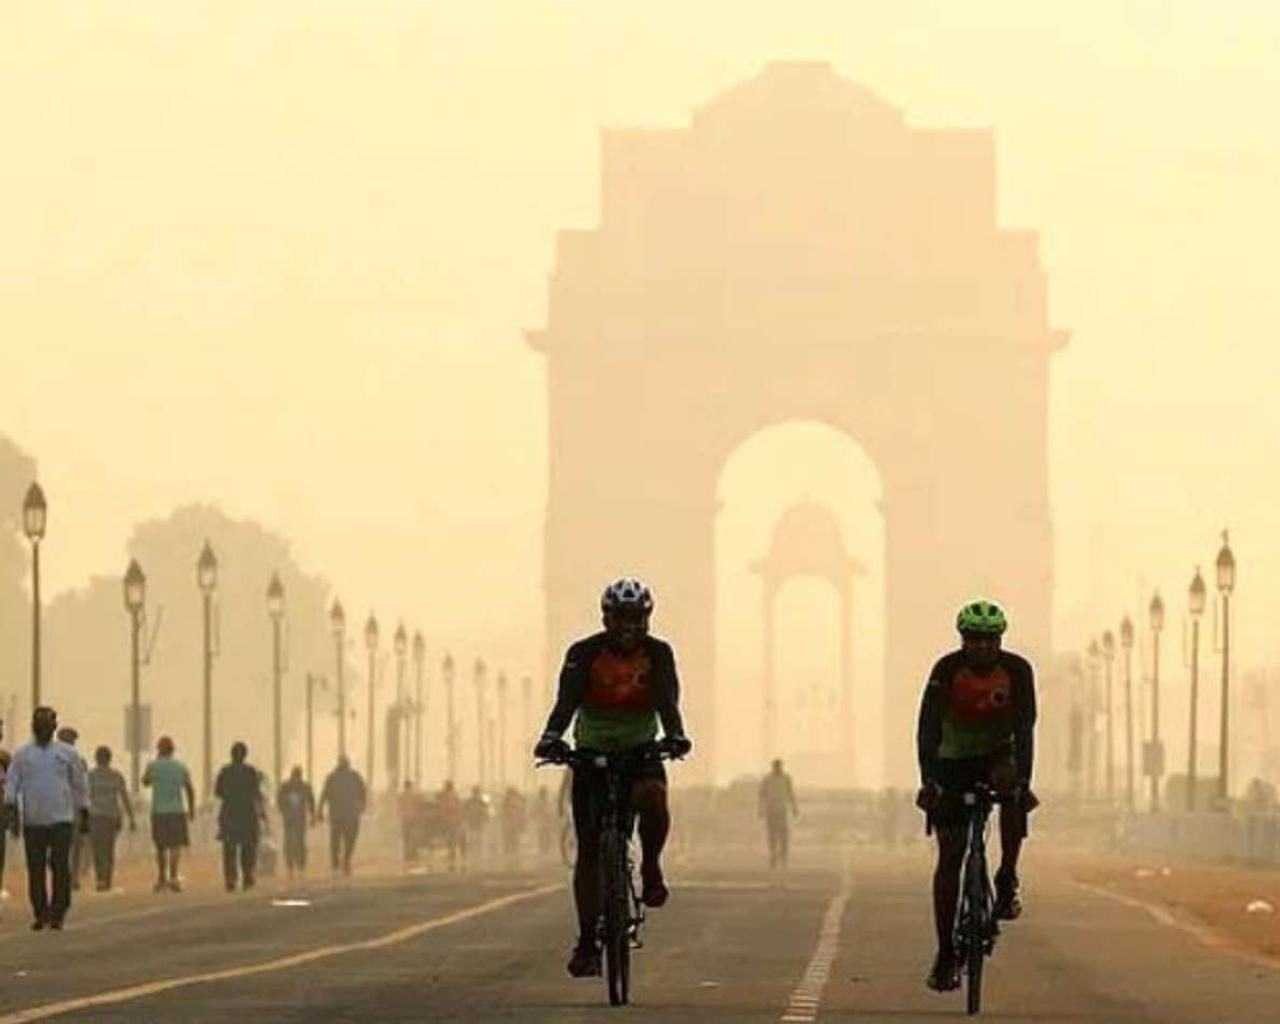 New Delhi is the most polluted city in the world for the third year in a row